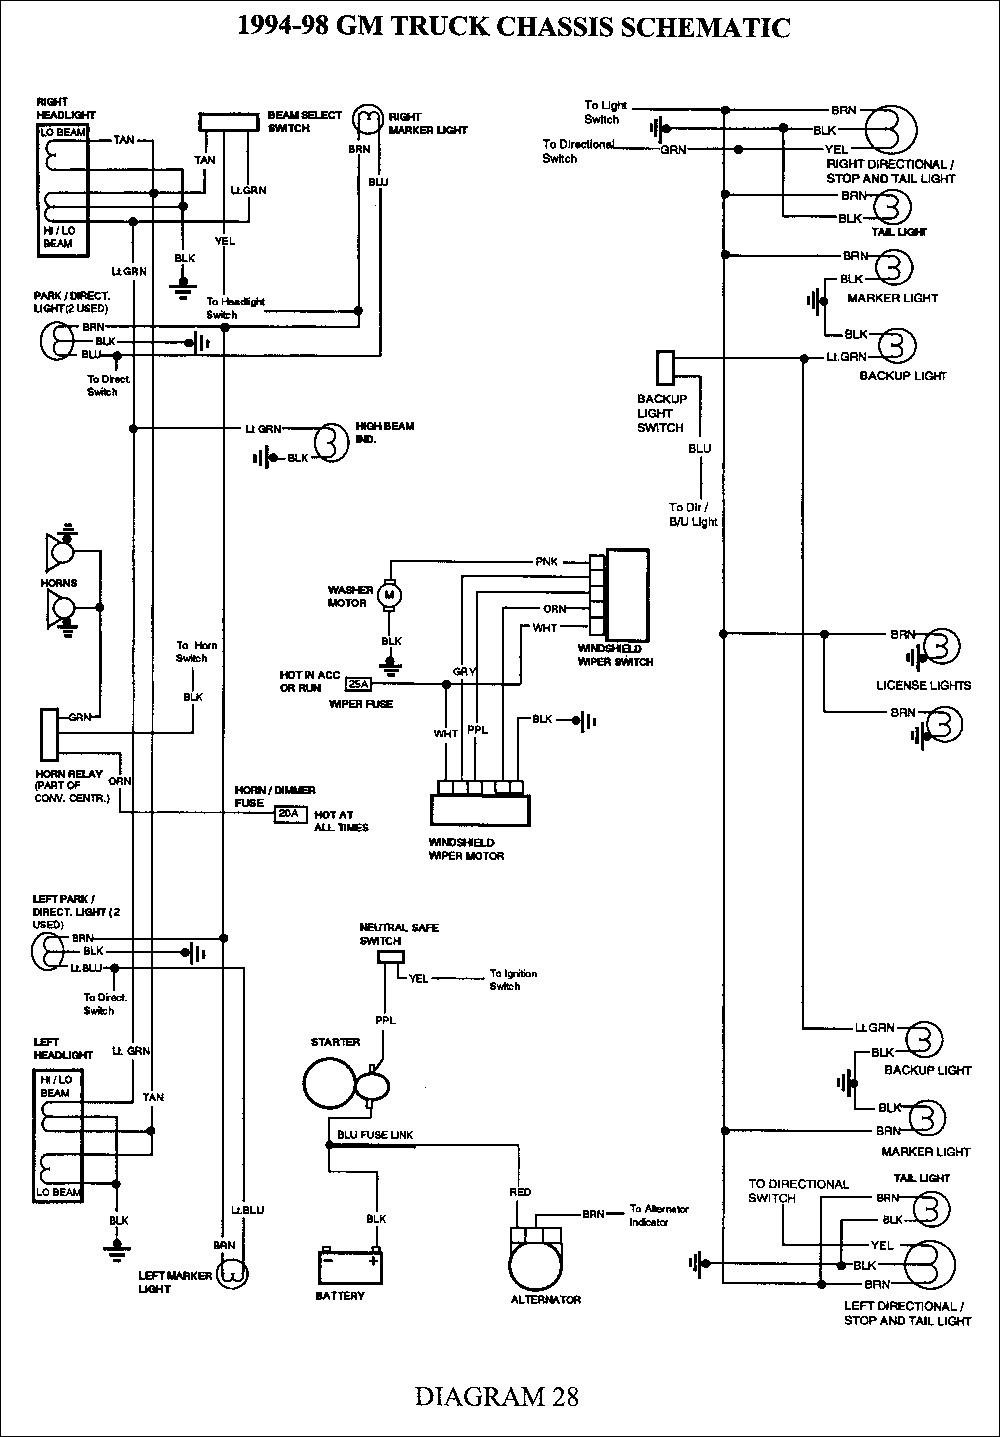 1999 yukon ac wiring diagram Images Gallery